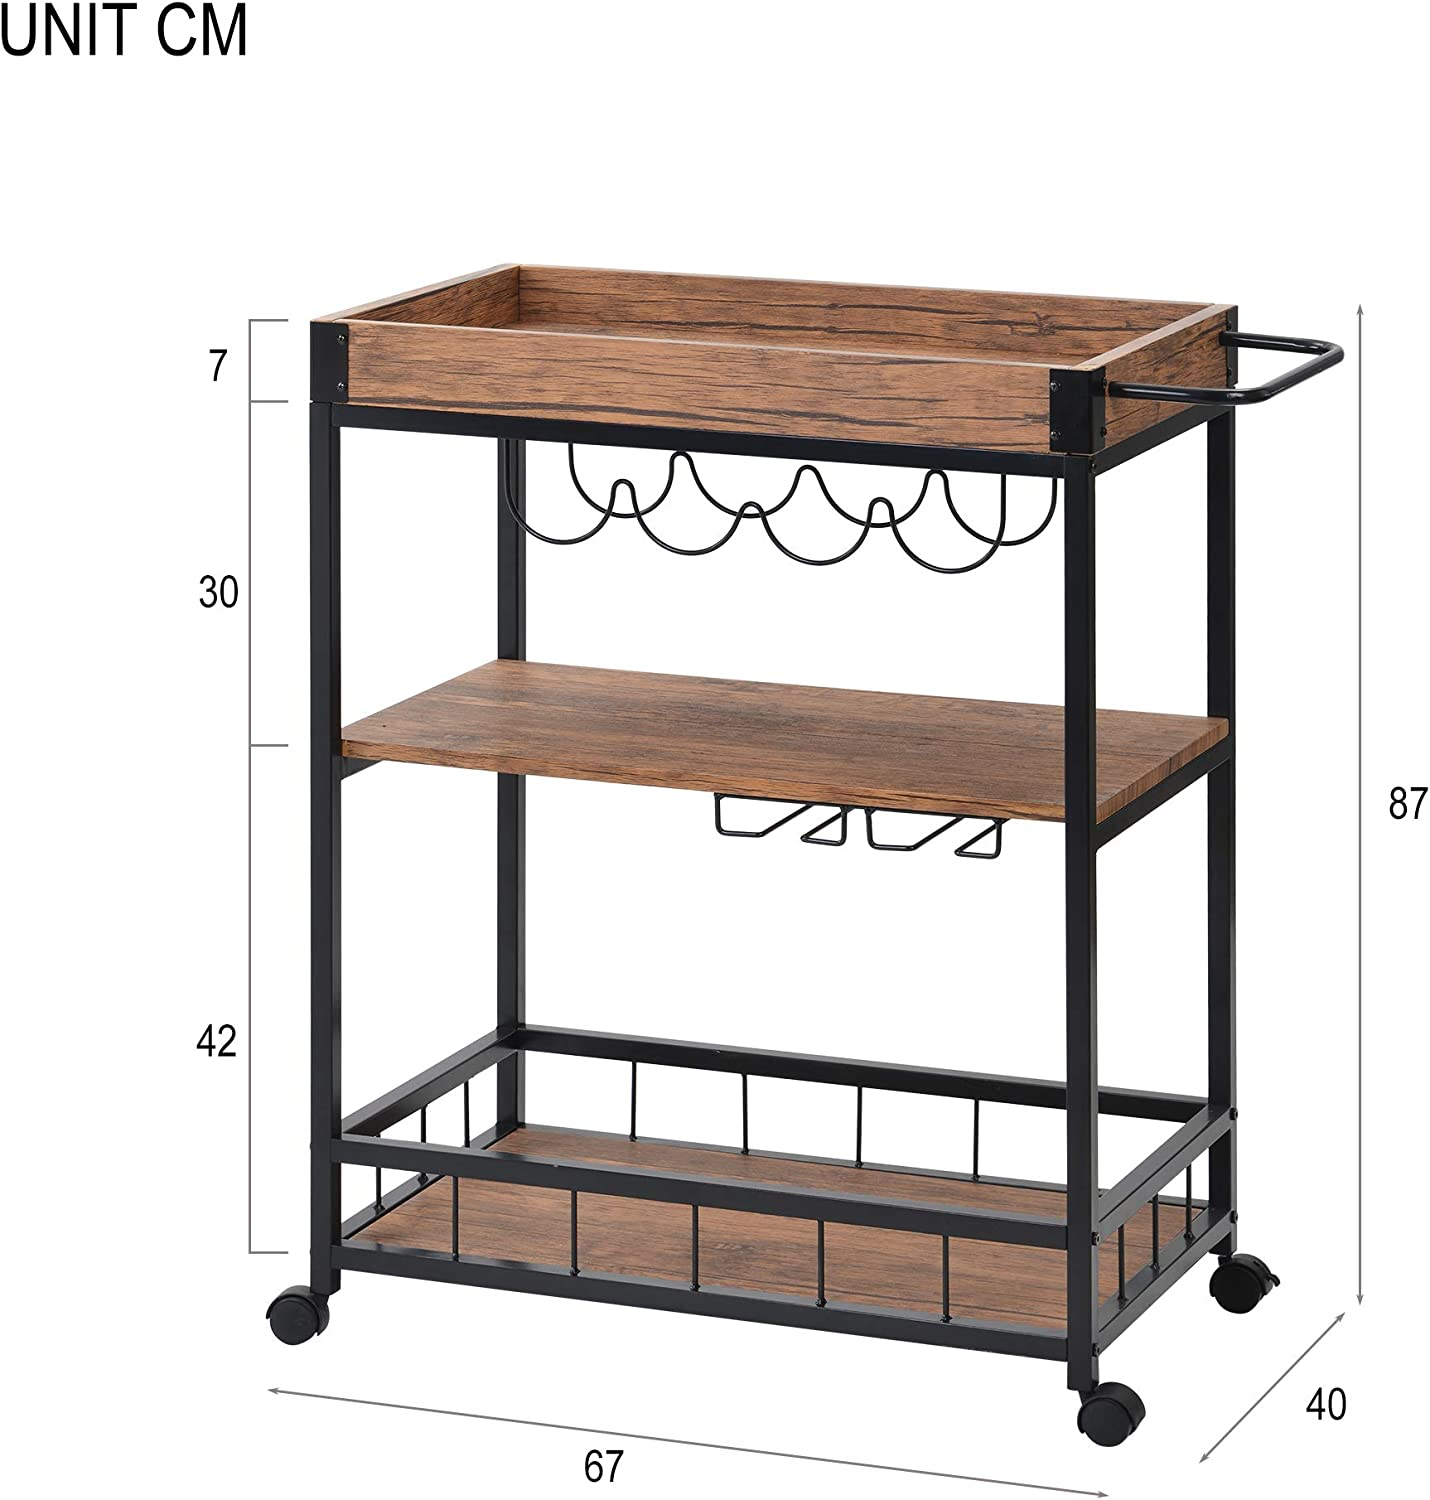 Leveling Feet Rustic Flieks 3 Tiers Kitchen Serving Trolley with Wine Rack Industrial Vintage Style Wood Metal,Kitchen Serving Cart with Removable Tray,Universal Casters with Brakes